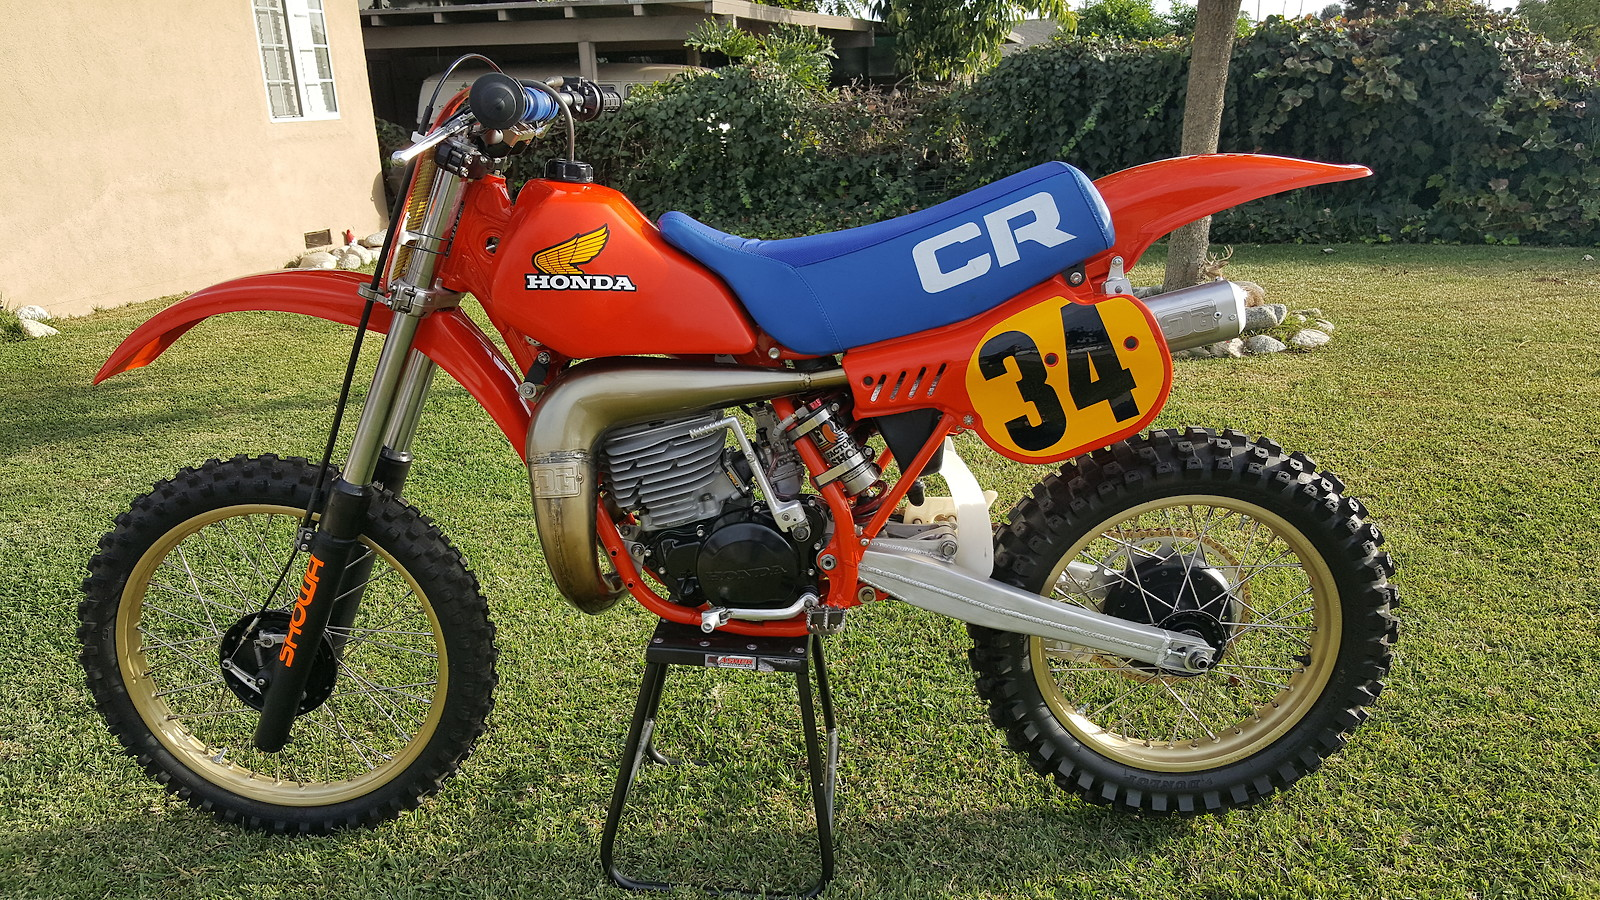 cr480RG3 - Vintage5150 - Motocross Pictures - Vital MX